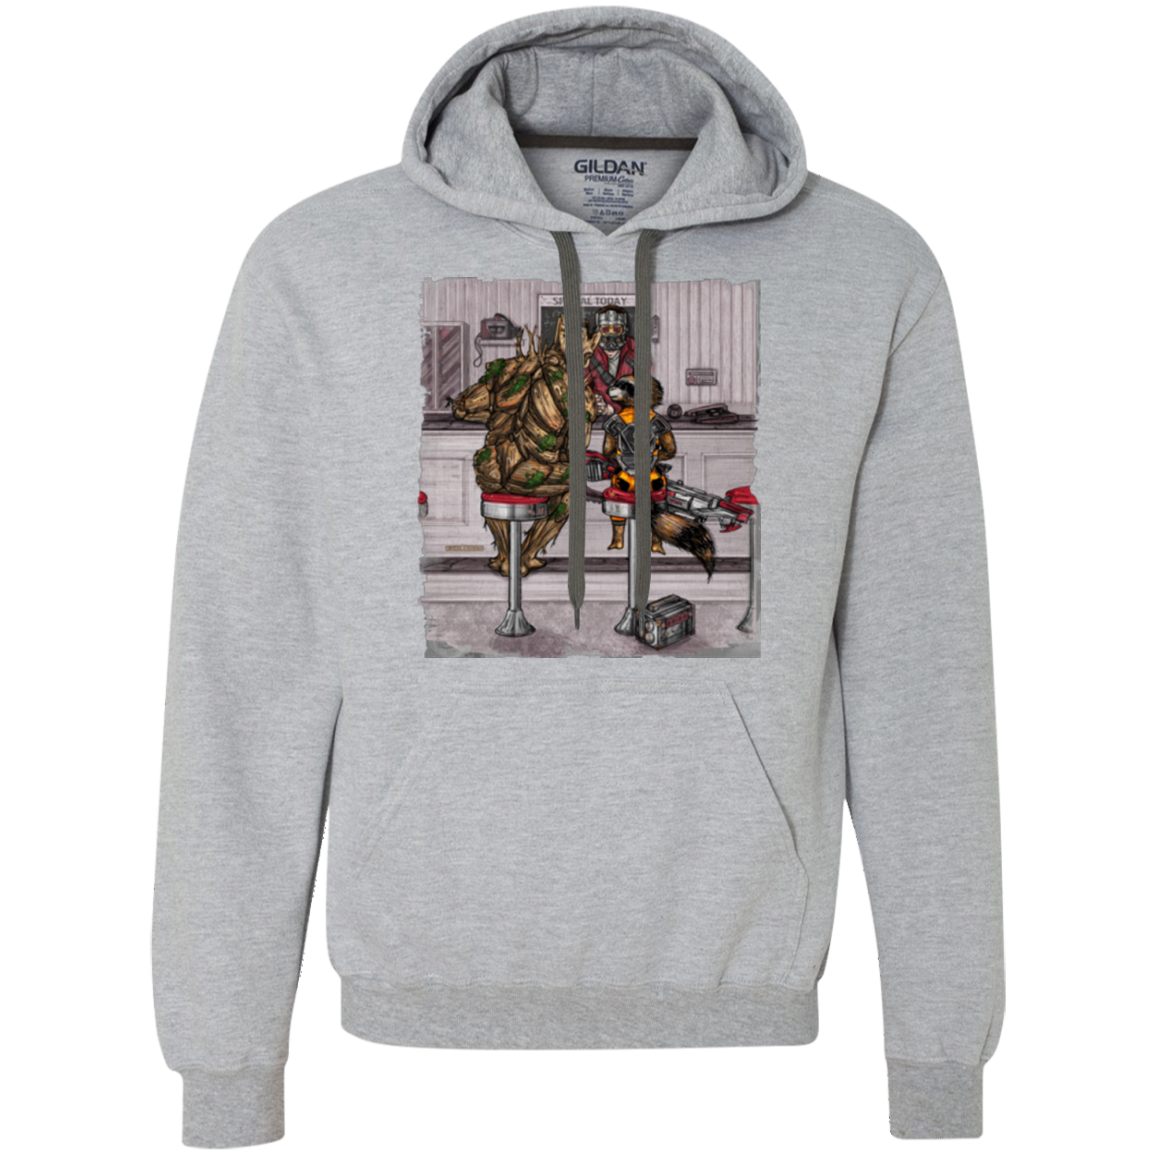 The Runaways Premium Fleece Hoodie